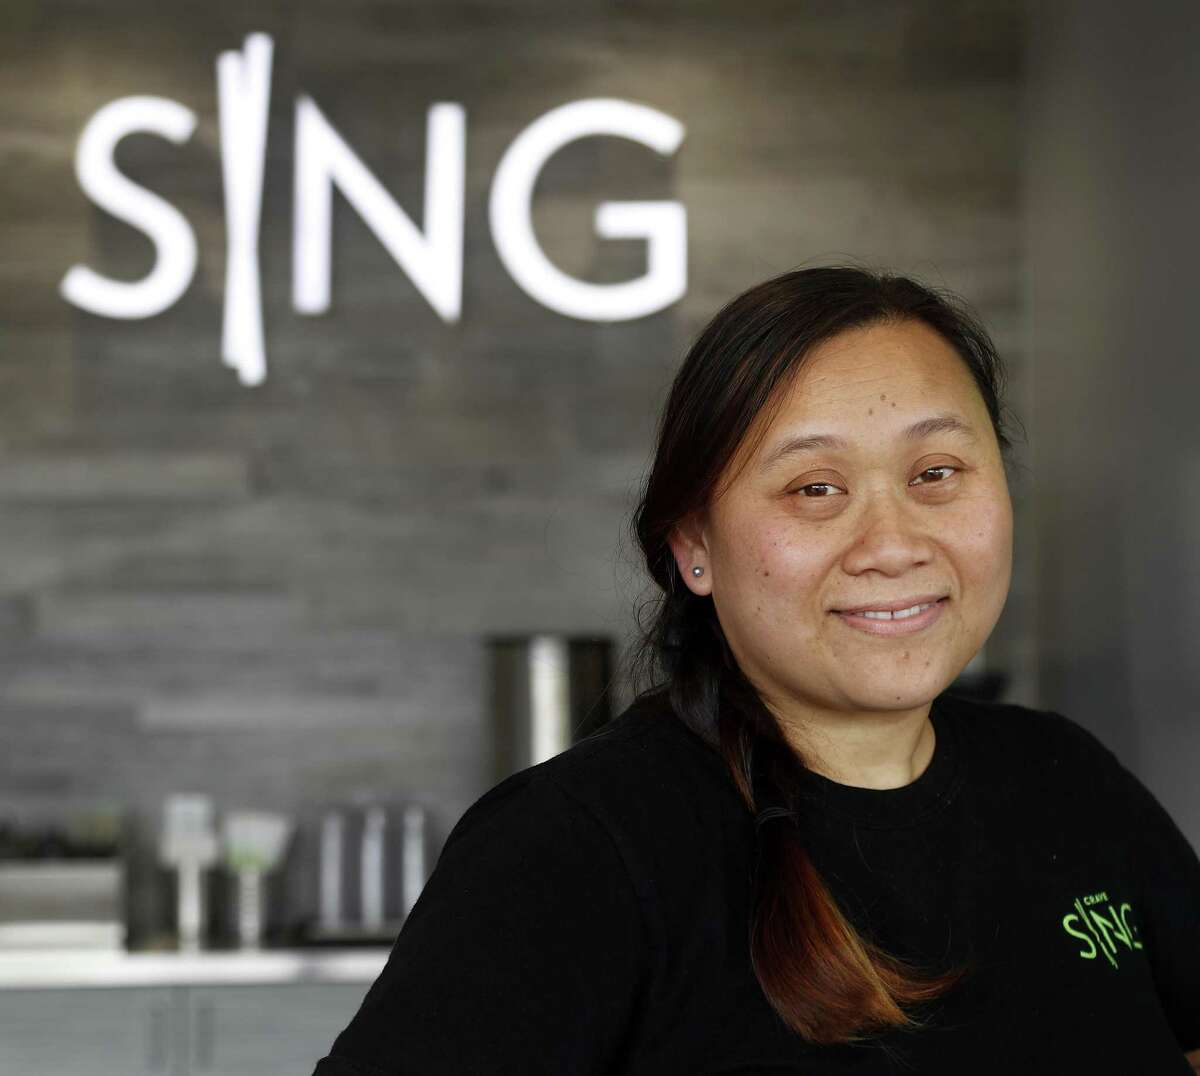 Cuc Lam, the founding chef/partner at Sing is no longer with the restaurant, according to Lasco Enterprises.